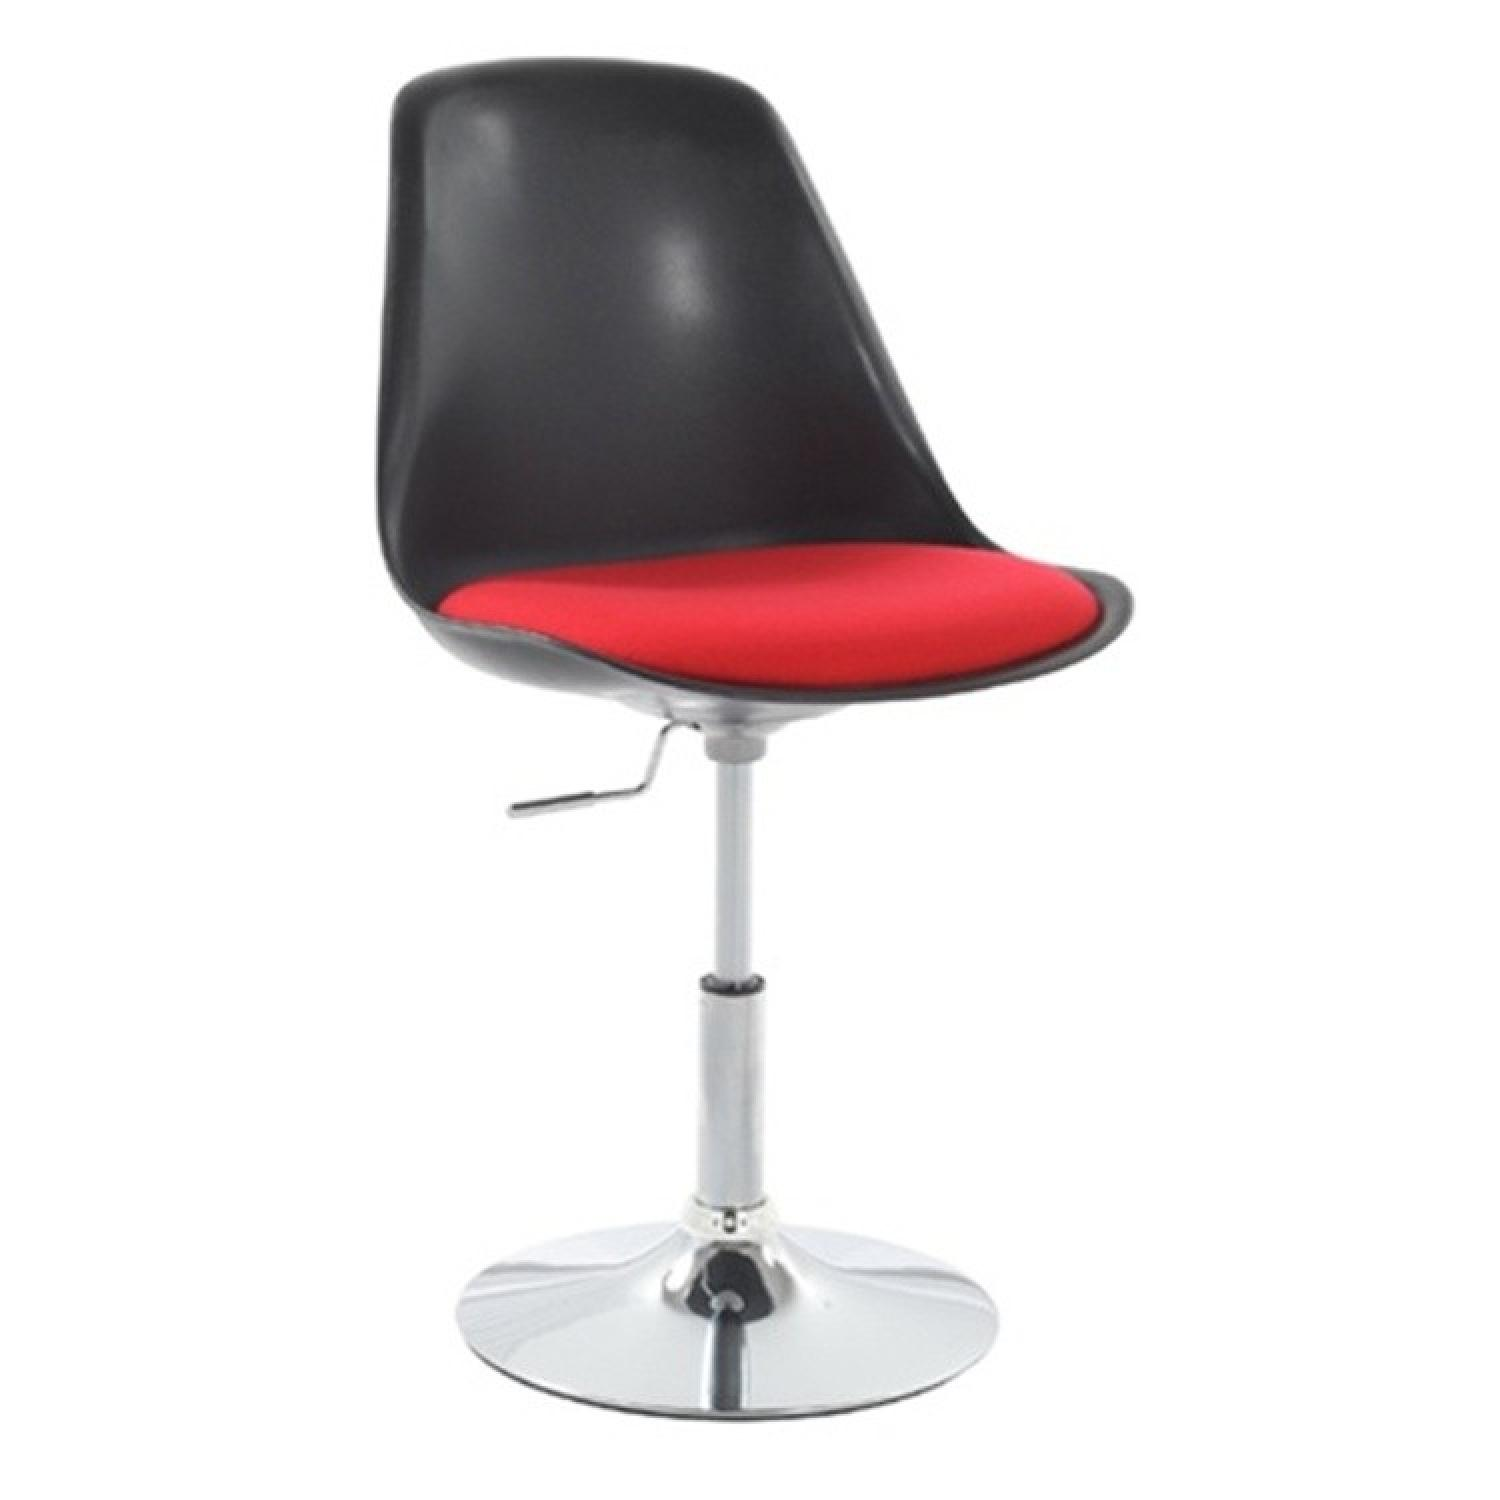 Swivel Height-Adjustable Side Chair in Black w/ Red Seat Cus